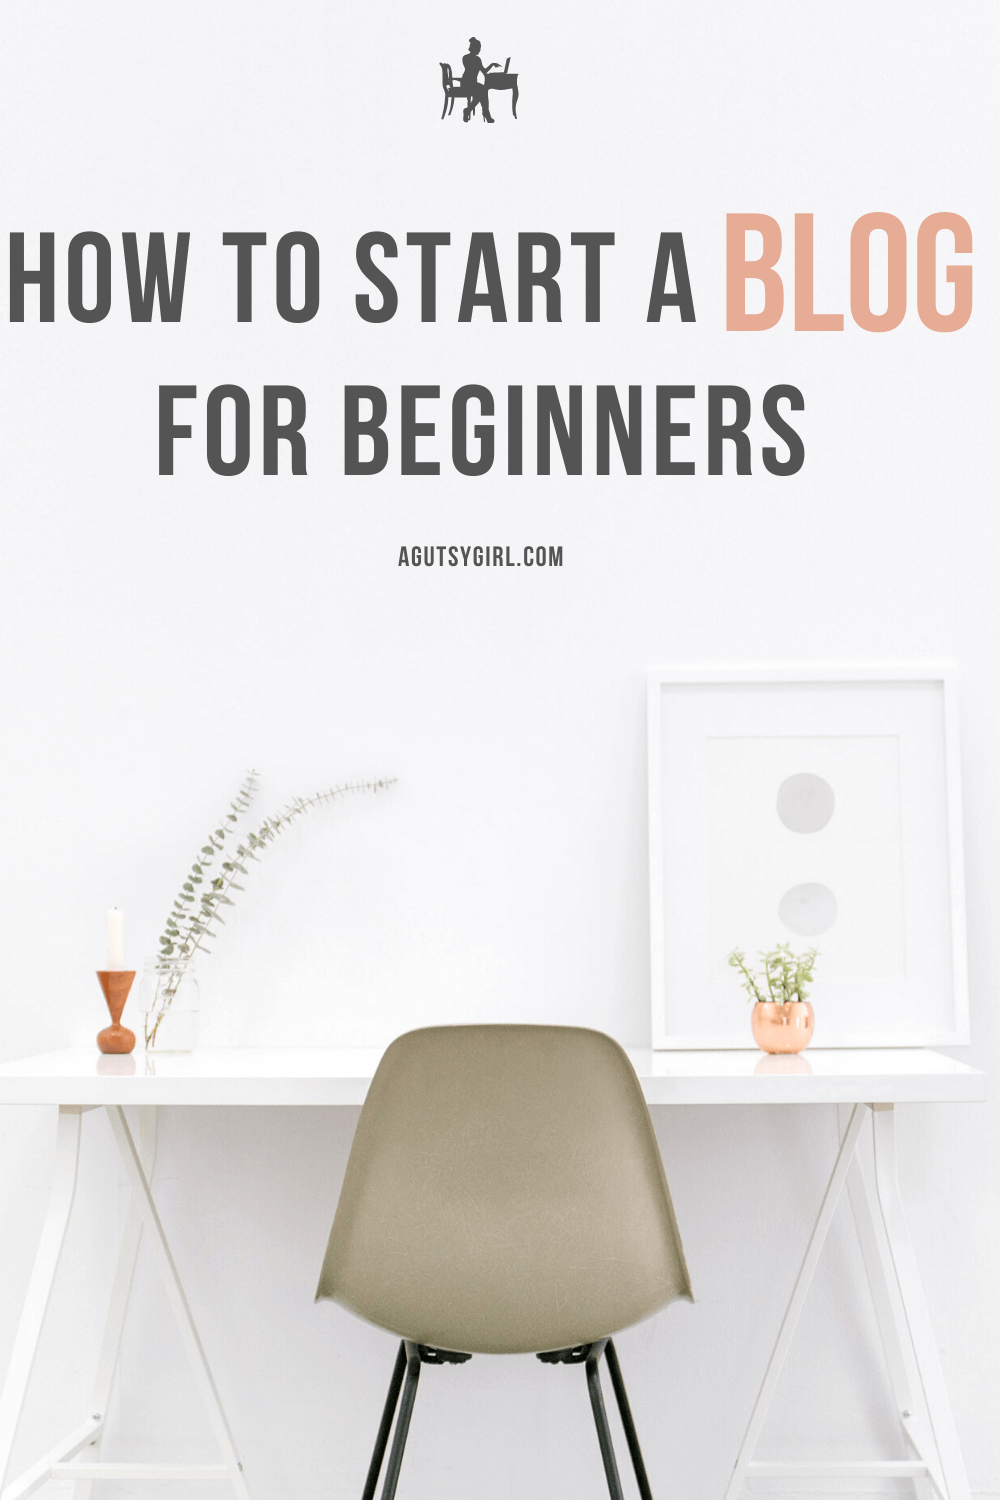 How to Start a Blog for Beginners agutsygirl.com #blog #bloggingforbeginners #blogger #mompreneur